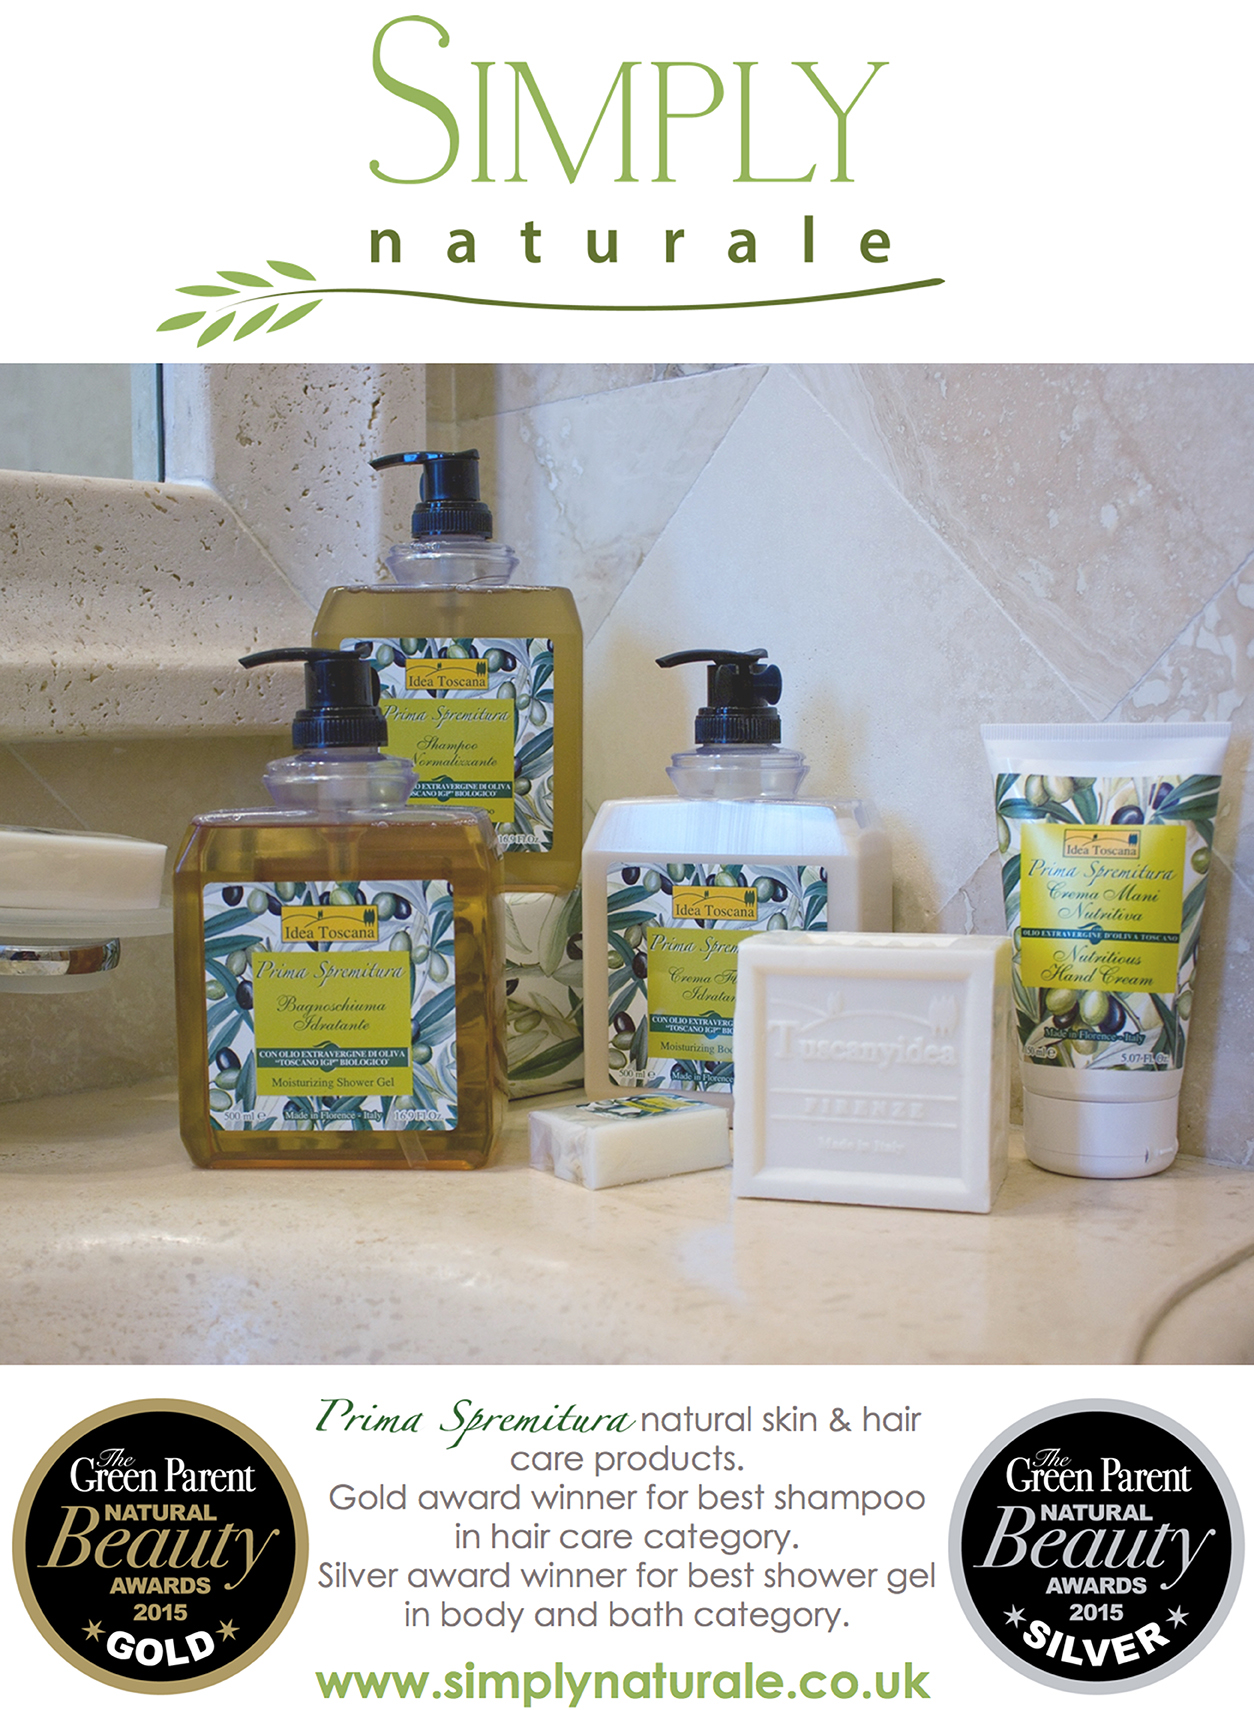 Simply Naturale - Green Parents Award